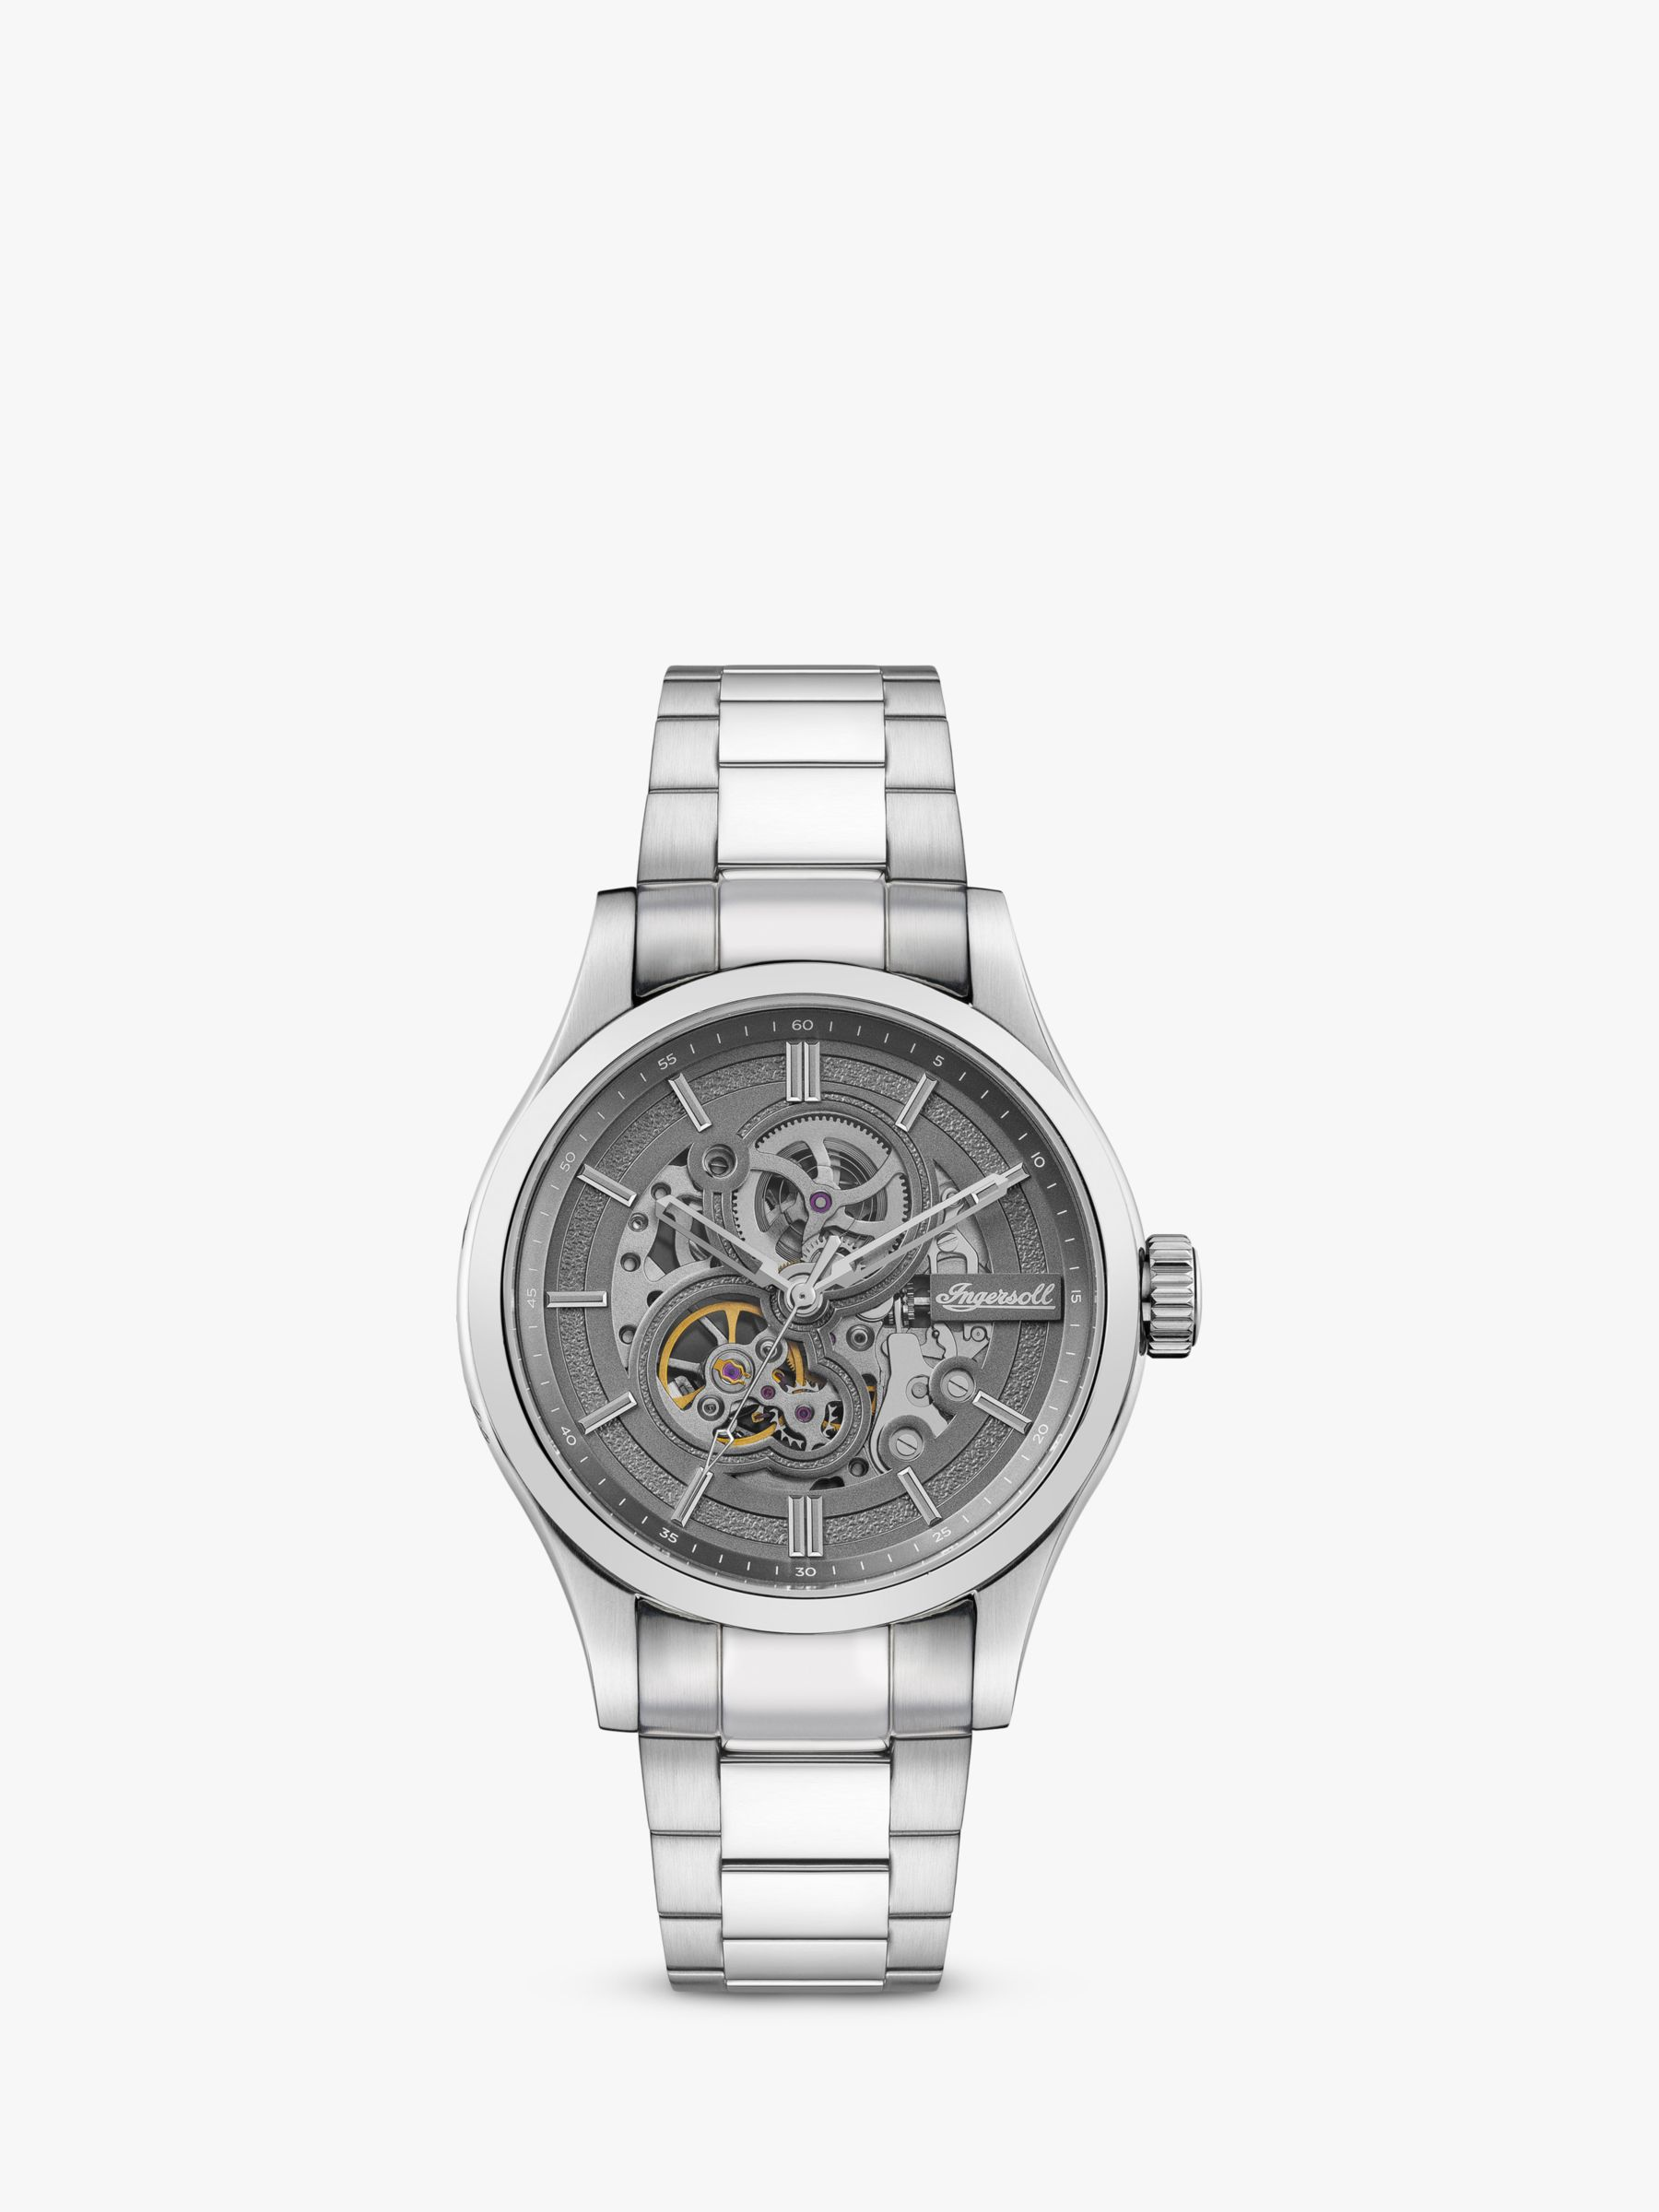 Ingersoll Ingersoll I06804 Men's The Armstrong Automatic Chronograph Day Date Bracelet Strap Watch, Silver